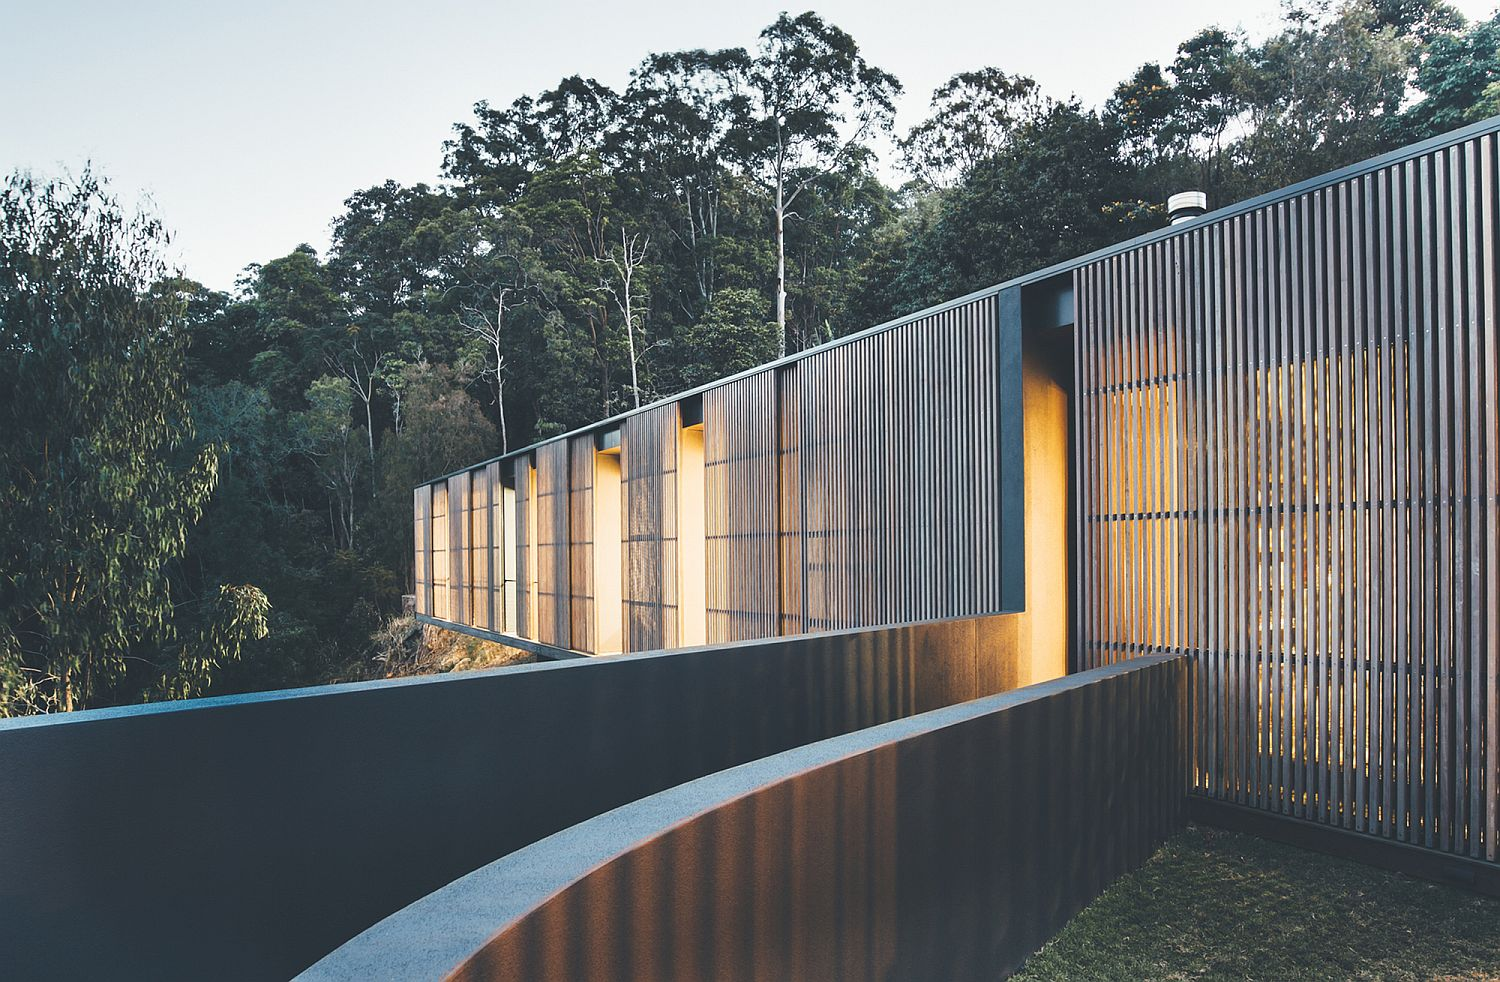 Lovely use of slats provides a balance between ventilation and privacy